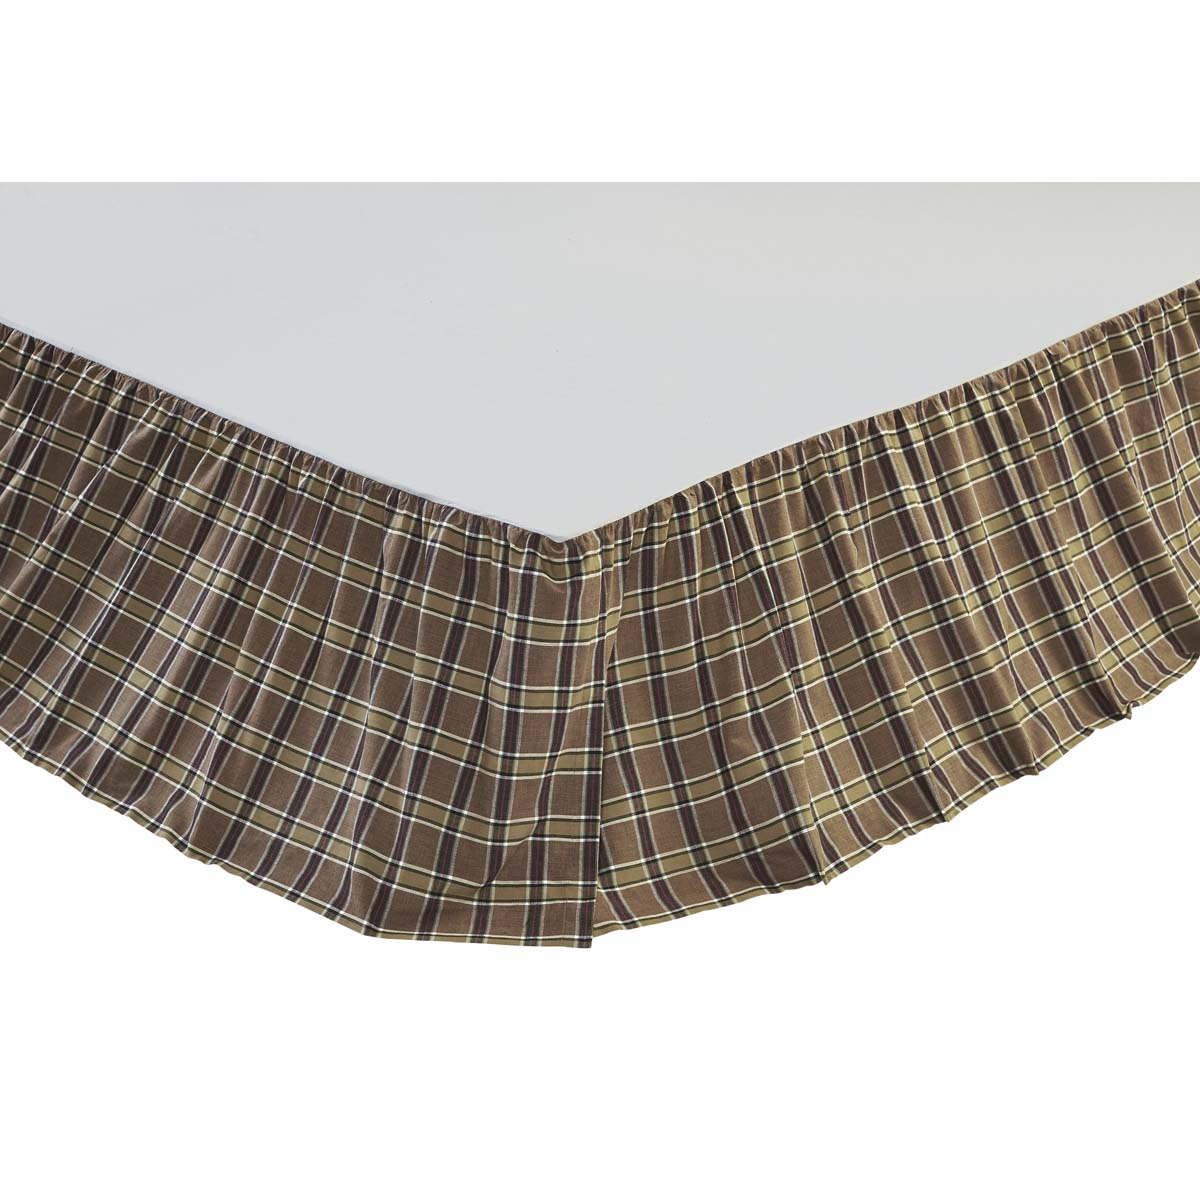 Wyatt King Bed Skirt 78x80x16